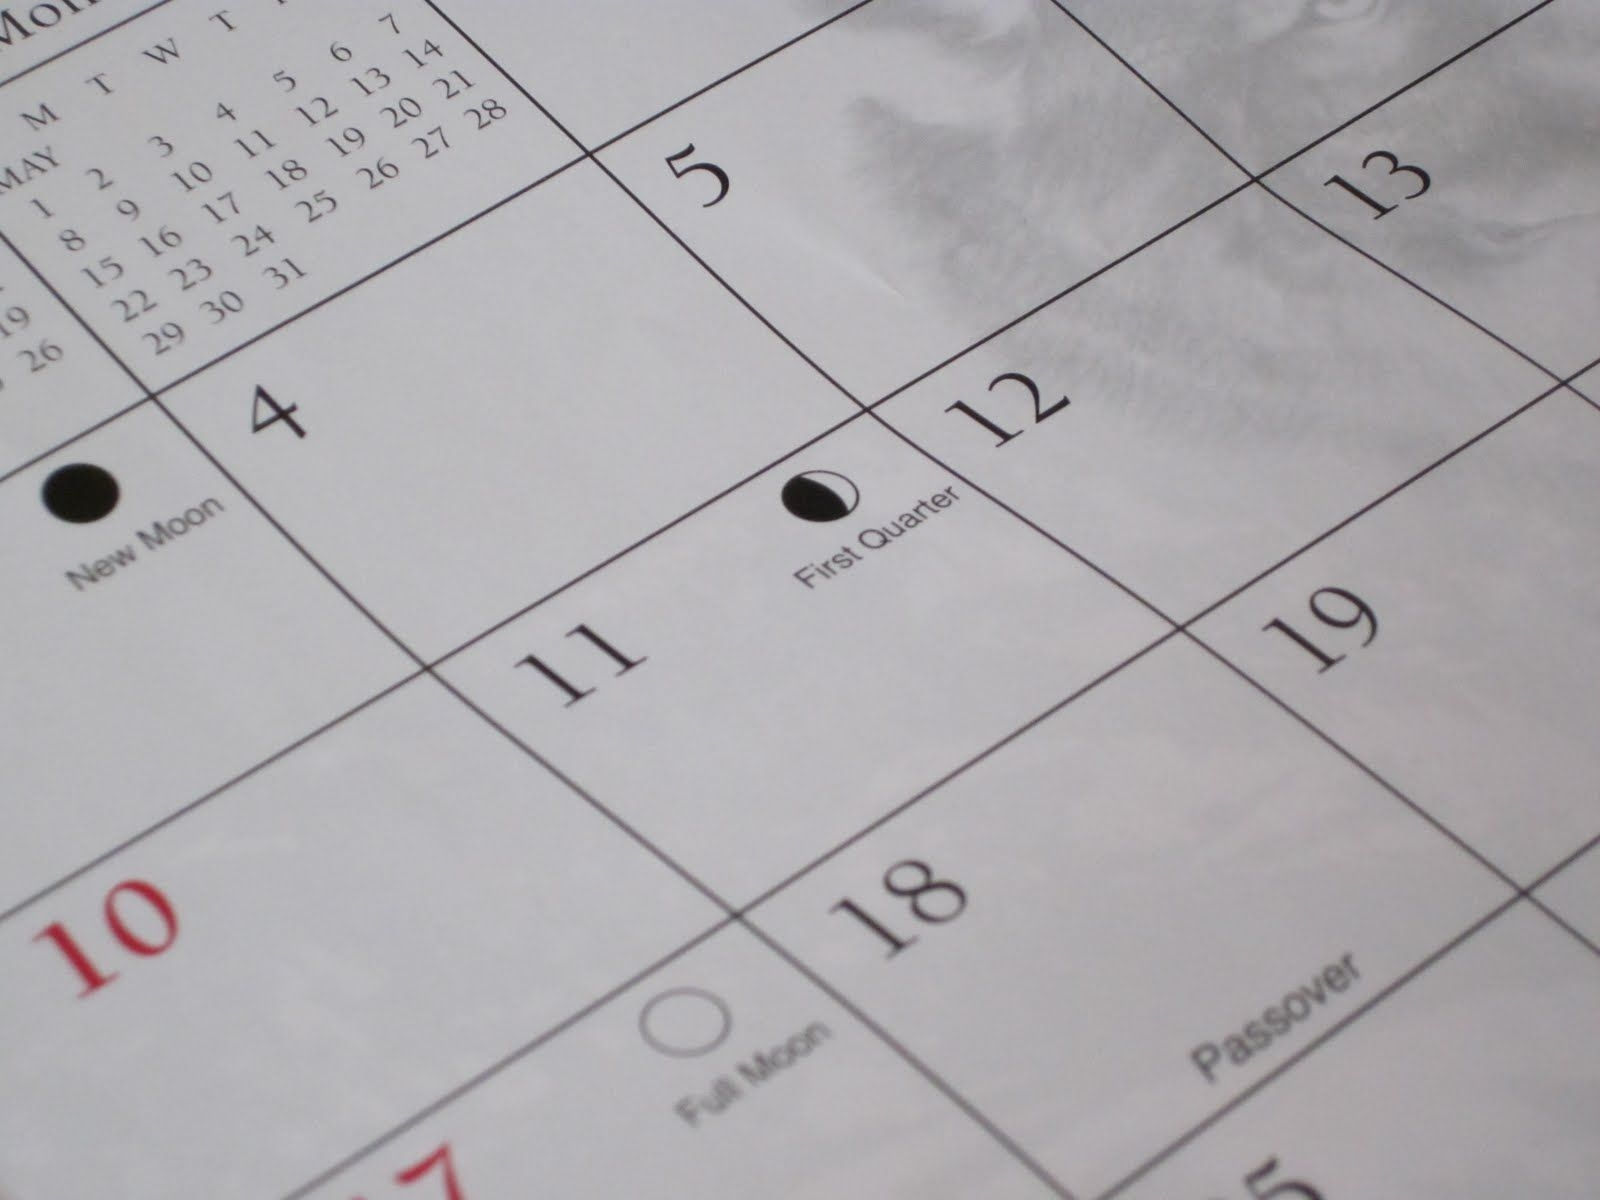 Lubor On Tech: Missing Features In Outlook Calendar